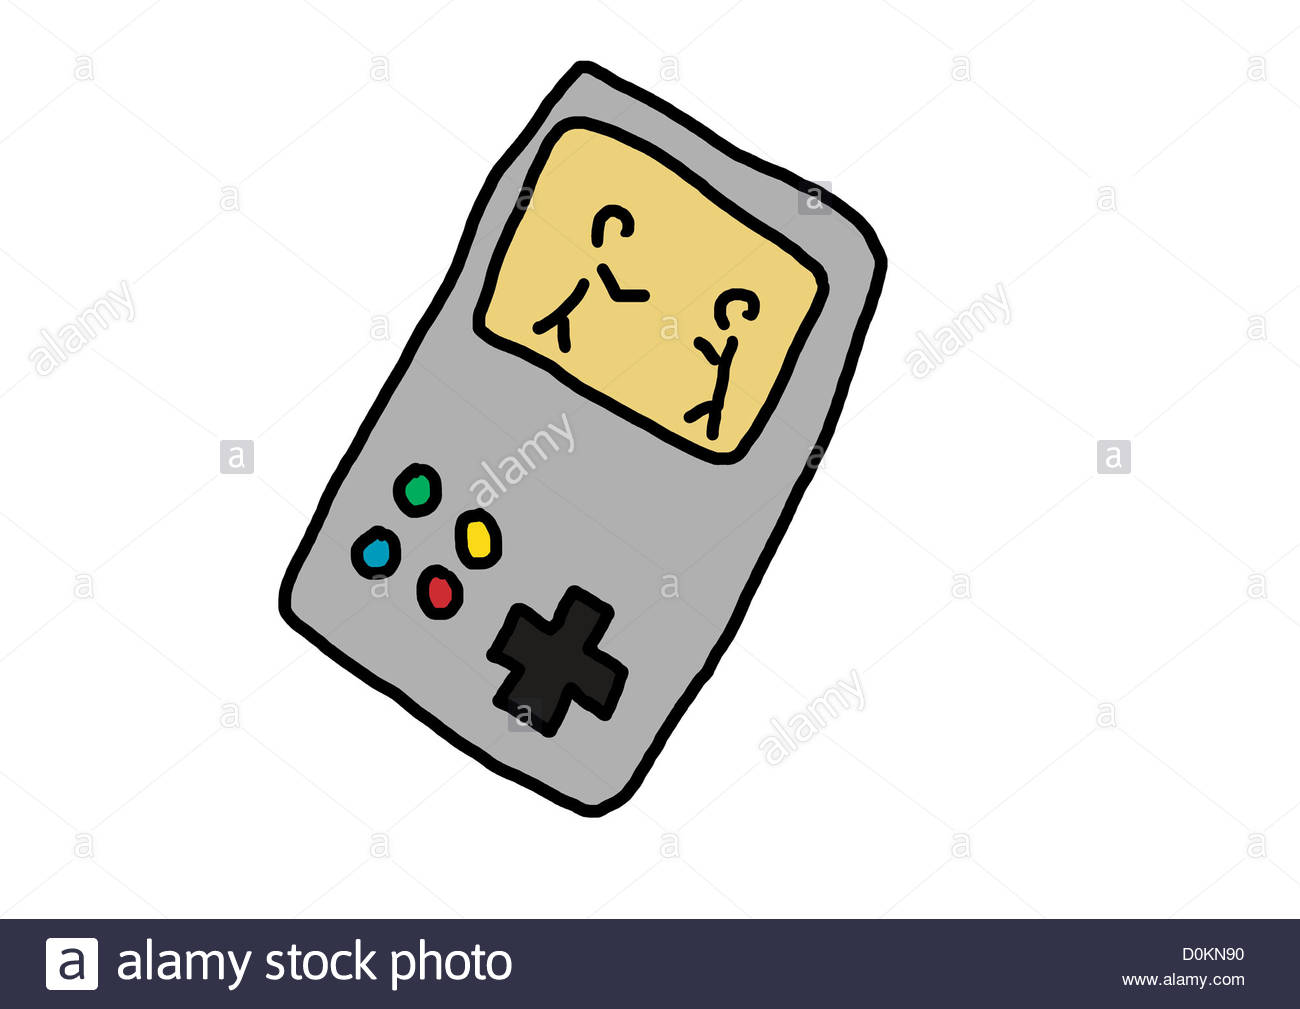 1300x1009 Game Console Kids Computer Drawing Illustration Pictogram Stock